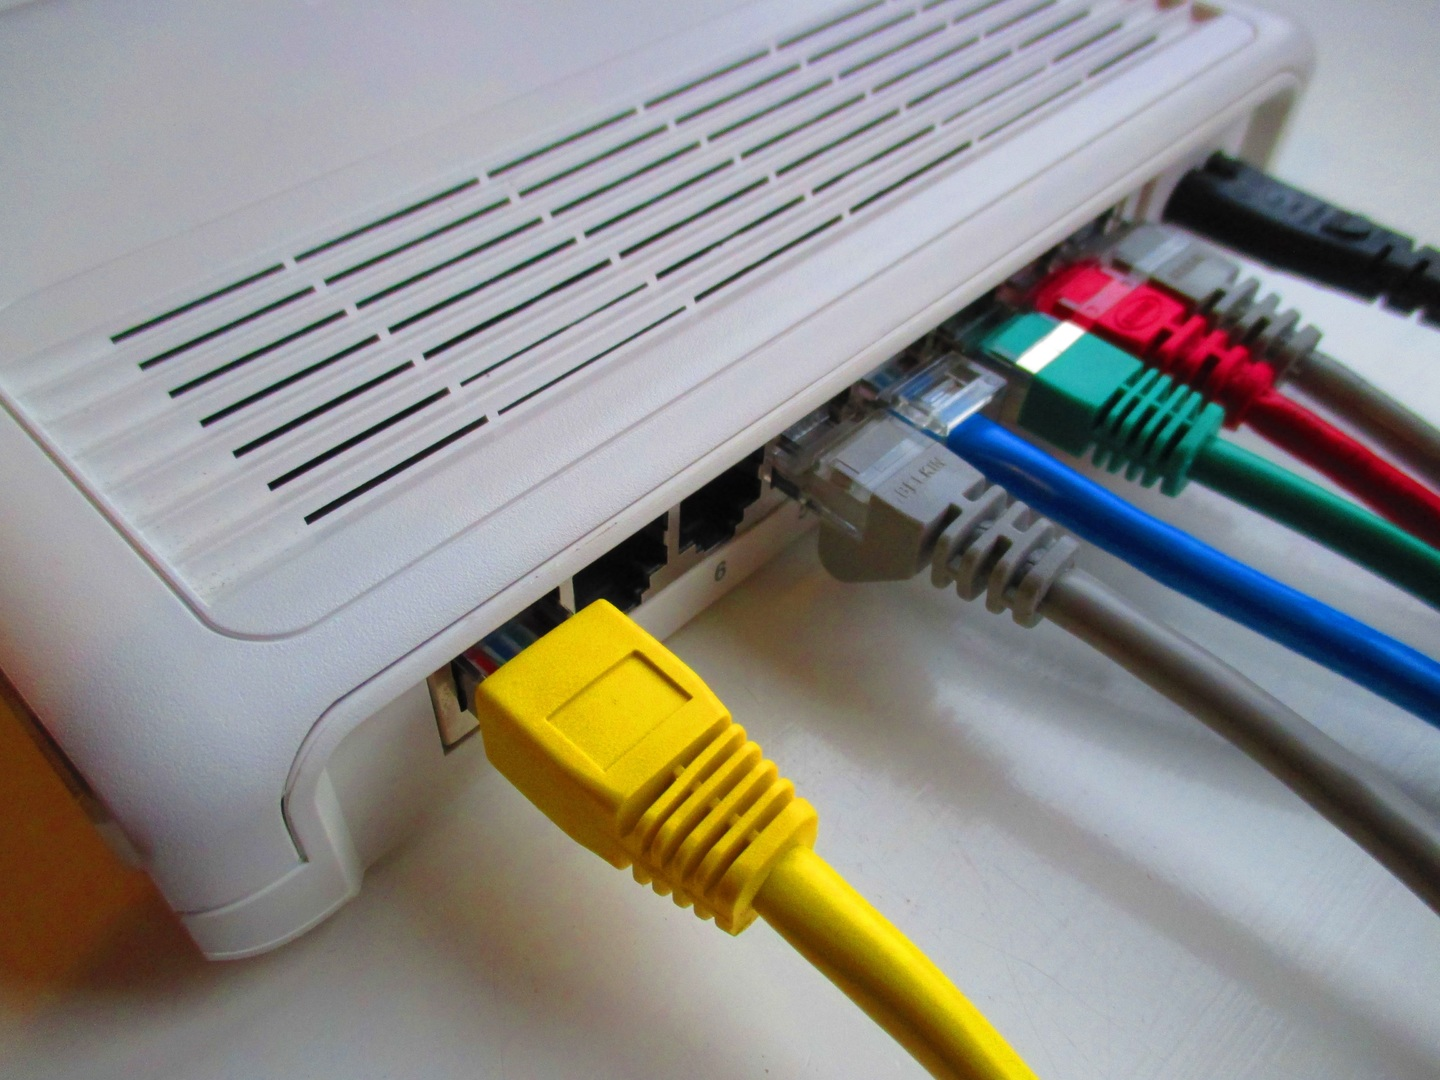 Cat5 Cat5e And Cat6 Ethernet Cables Explained Manual Guide